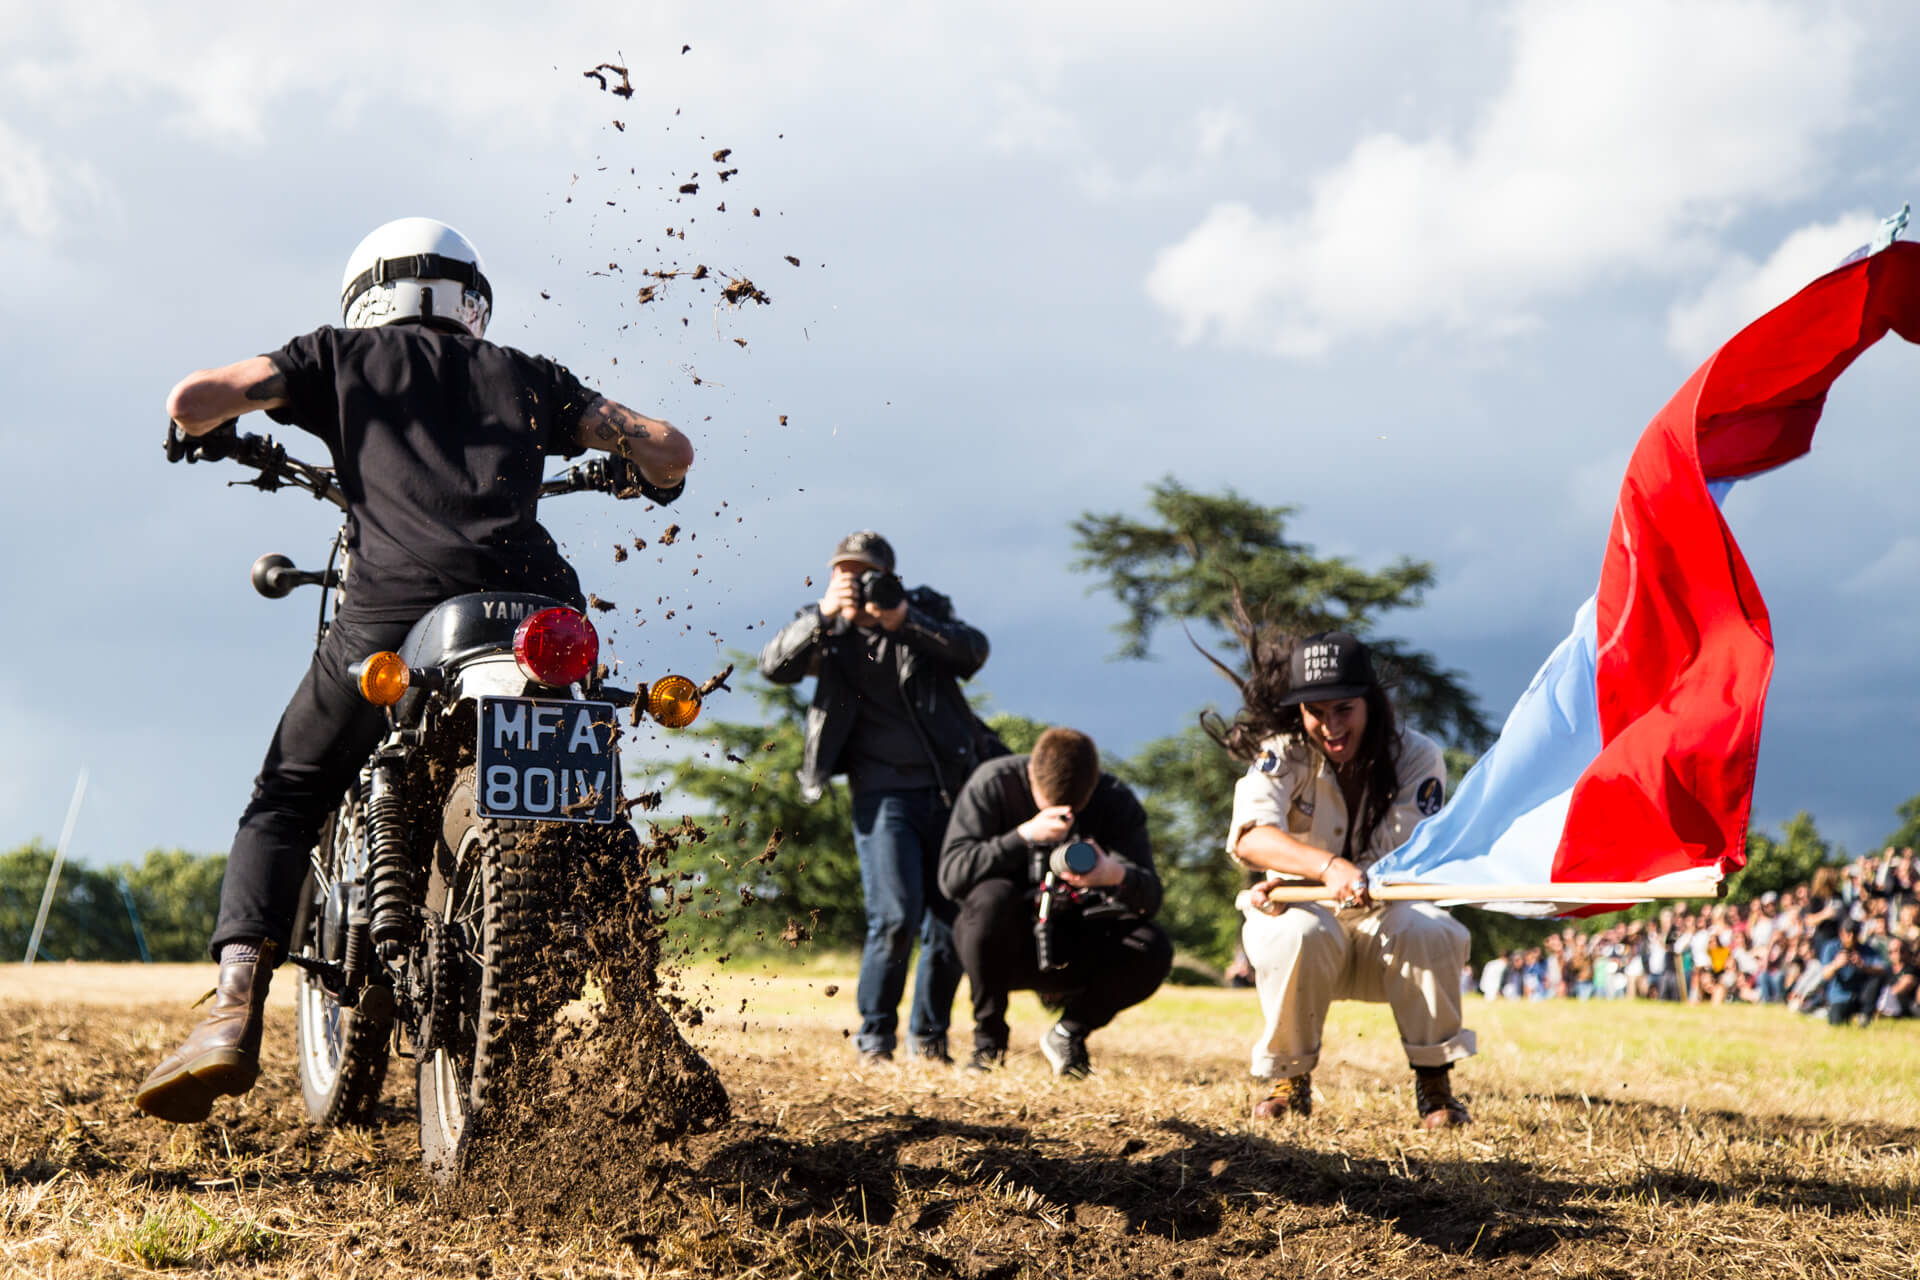 Malle Mile, Event, Motorcycle, Richard, Summer, WeAreShuffle, Agency, Photography, Film, Production, Malle London, Triumph, Flag, Biker, Field, Race, Helmet, Start, BTS